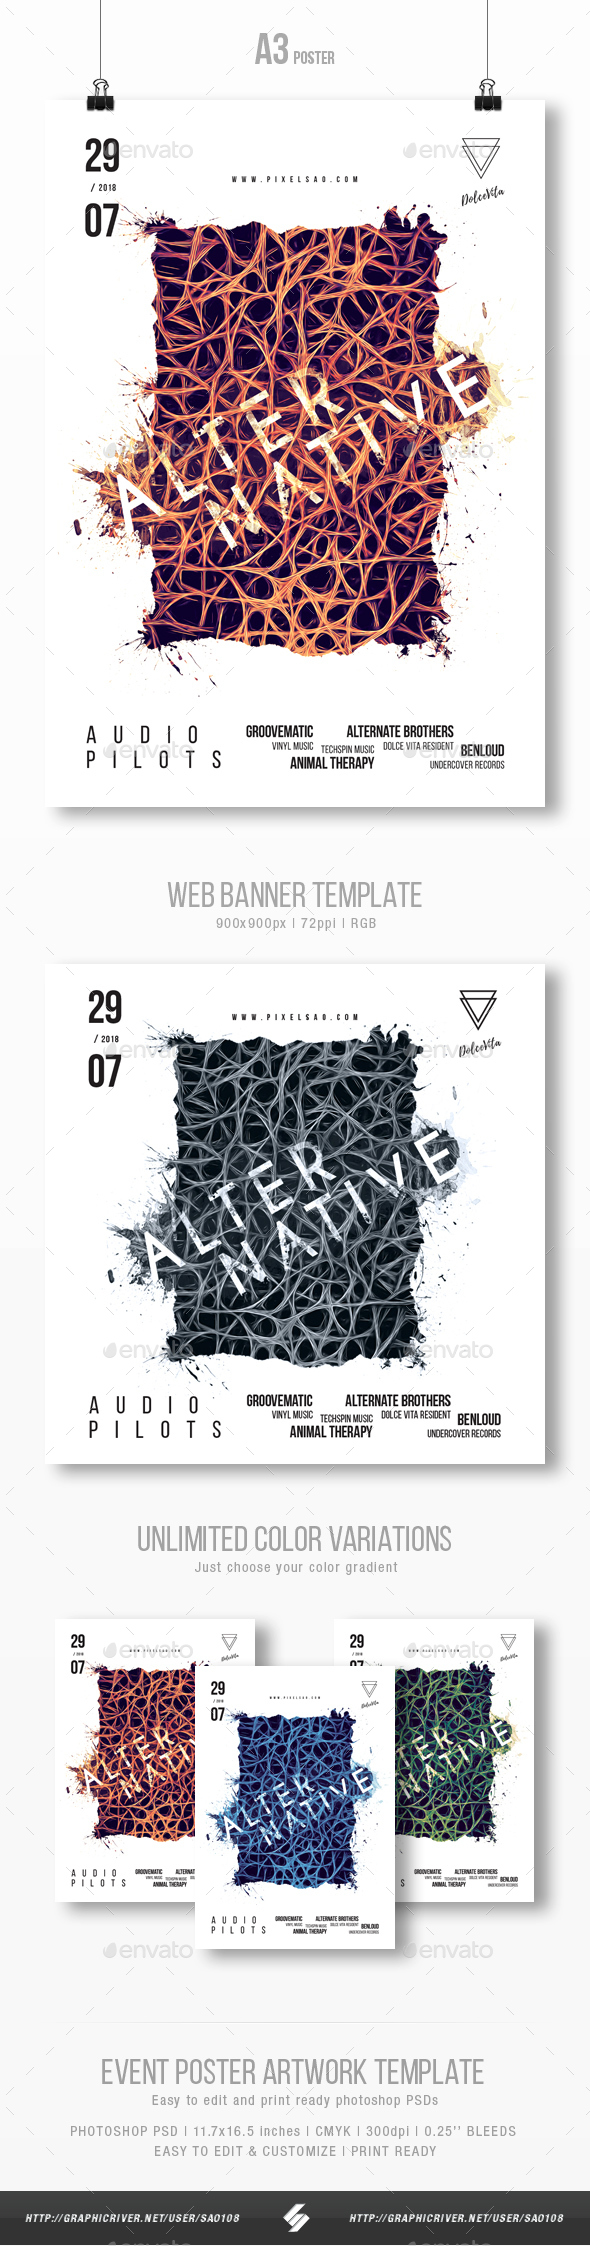 Alternative - Abstract Party Poster Artwork Template A3 - Events Flyers